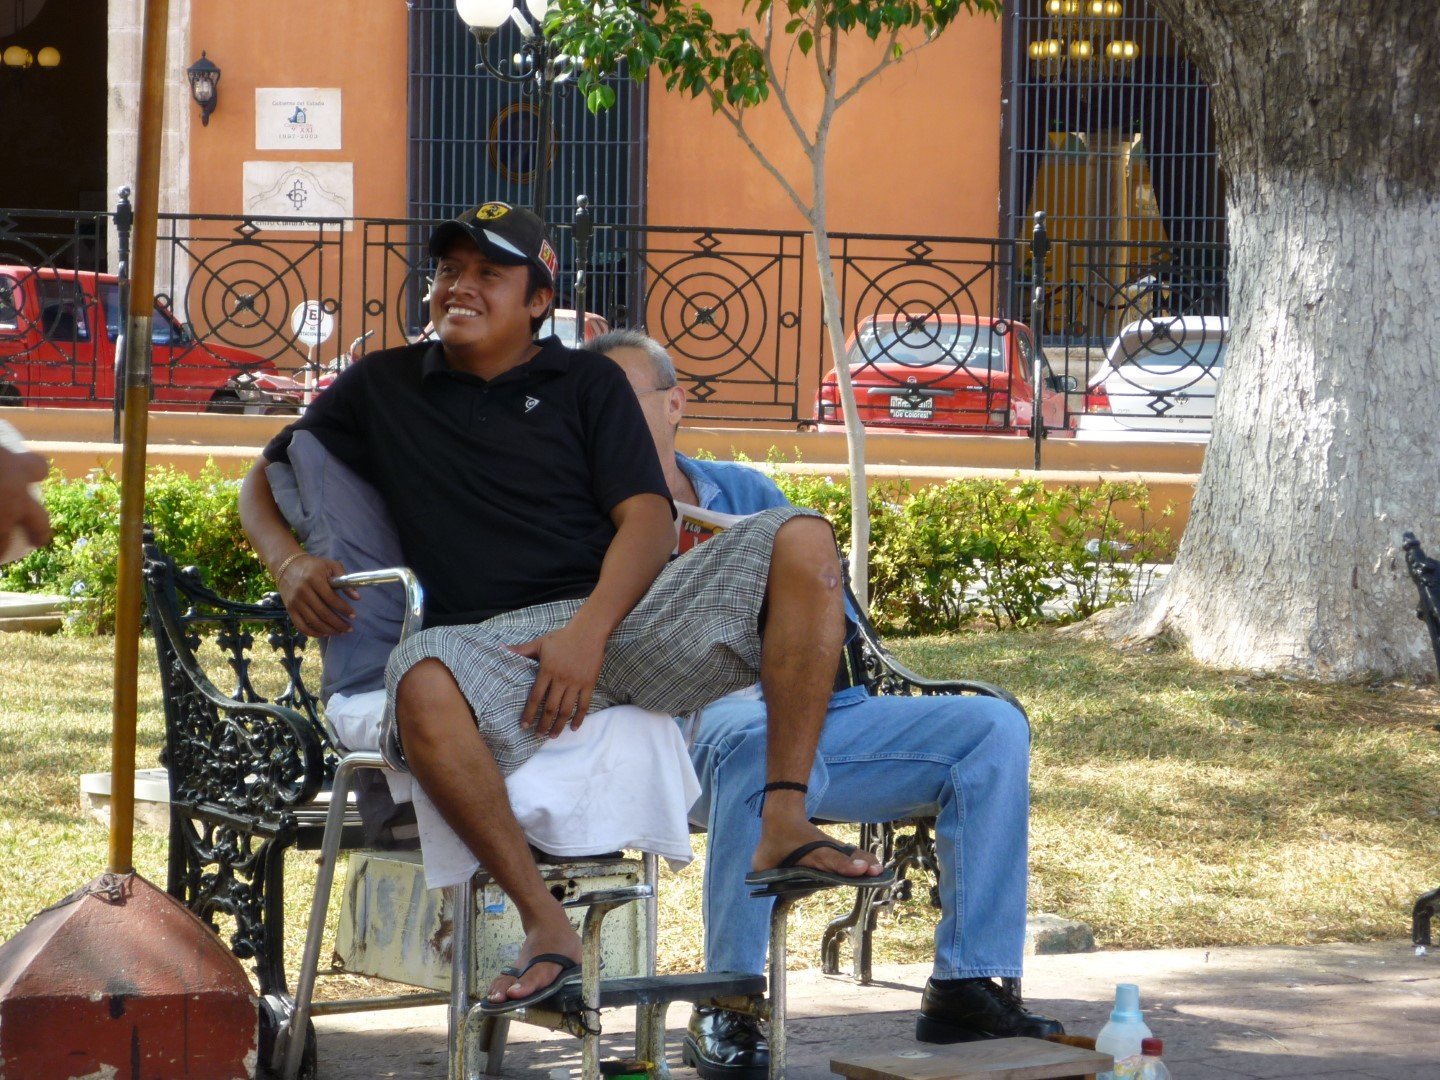 Shoeshine in Campeche Mexico